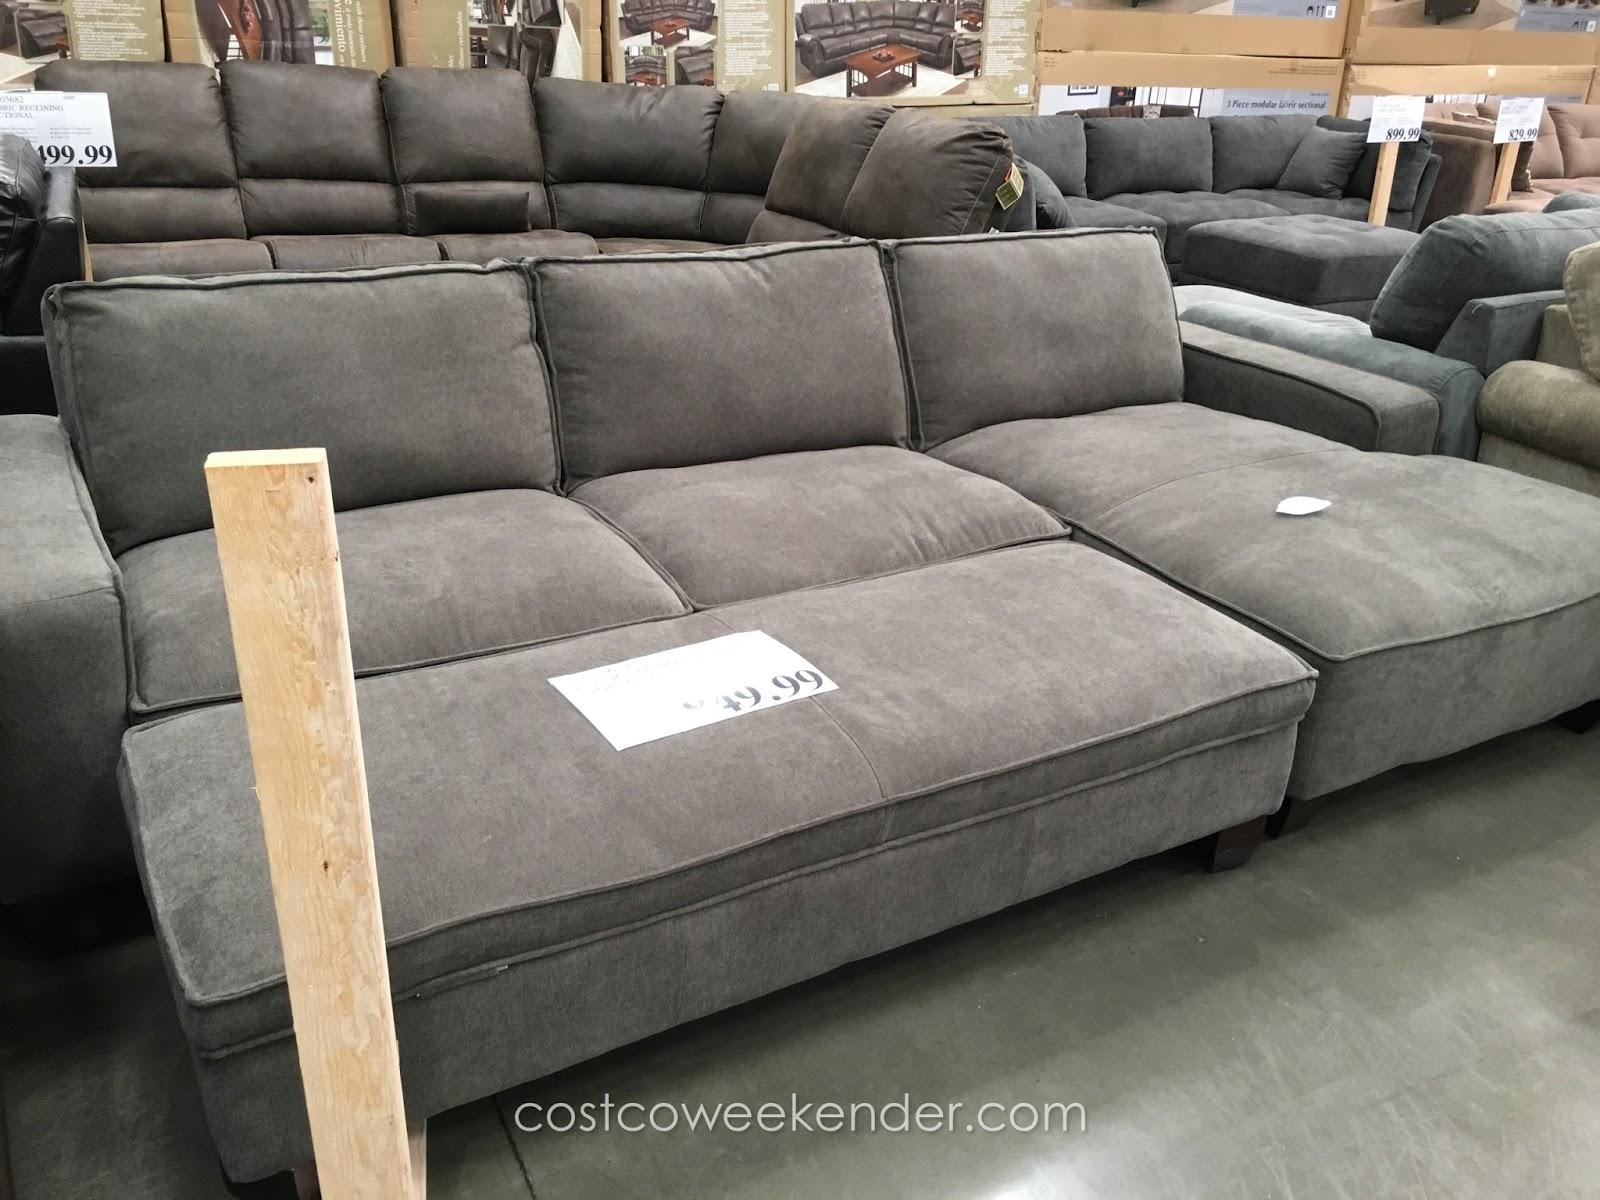 Extra large sofa beds sofa bed design extra large beds simple modern grey thesofa Large couch bed